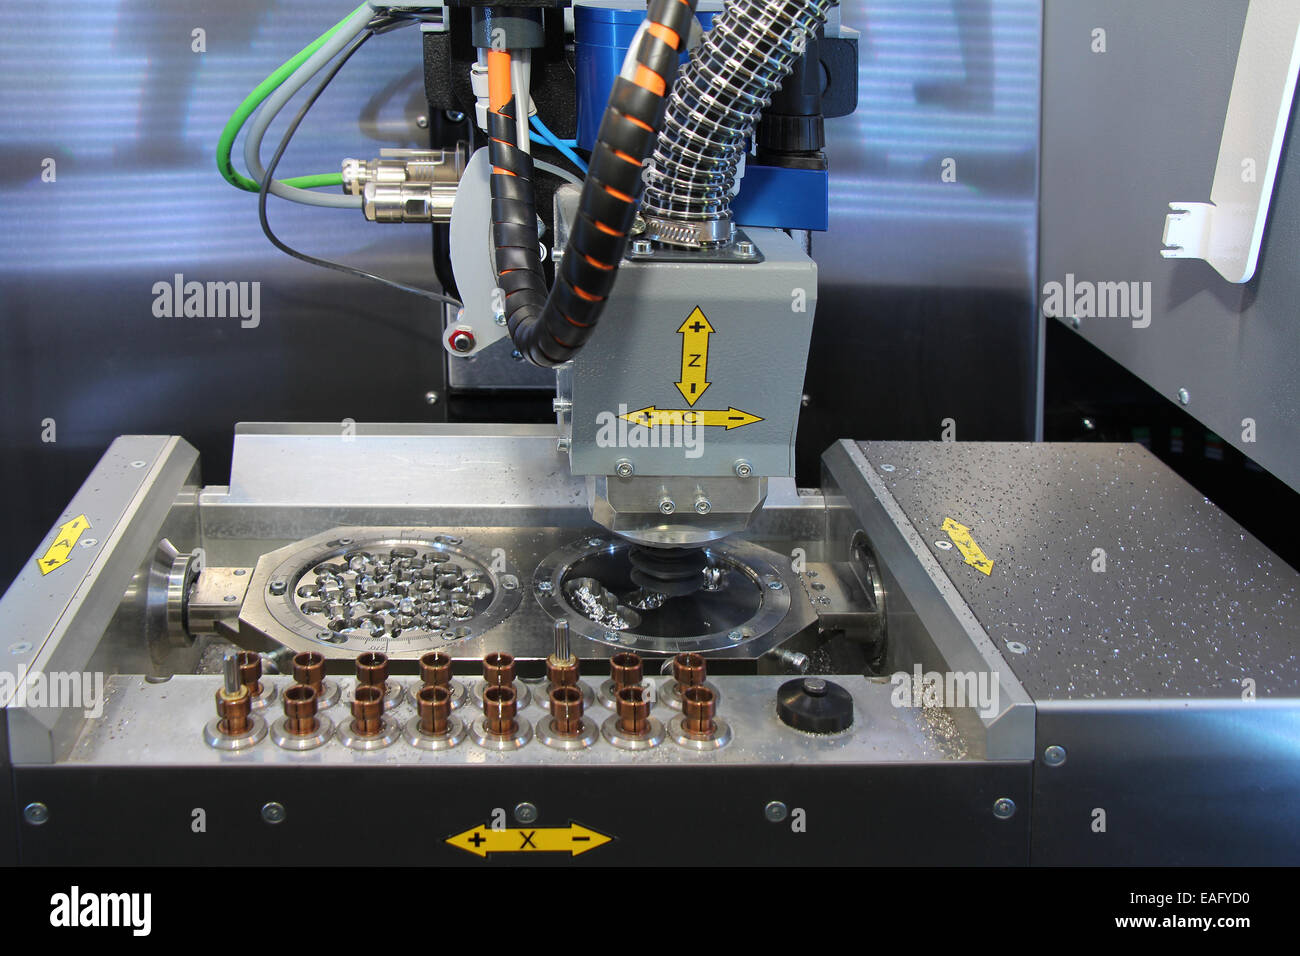 Dental CNC engraver in action. Dental milling machine carving out previously  scanned and computer manipulated model - Stock Image